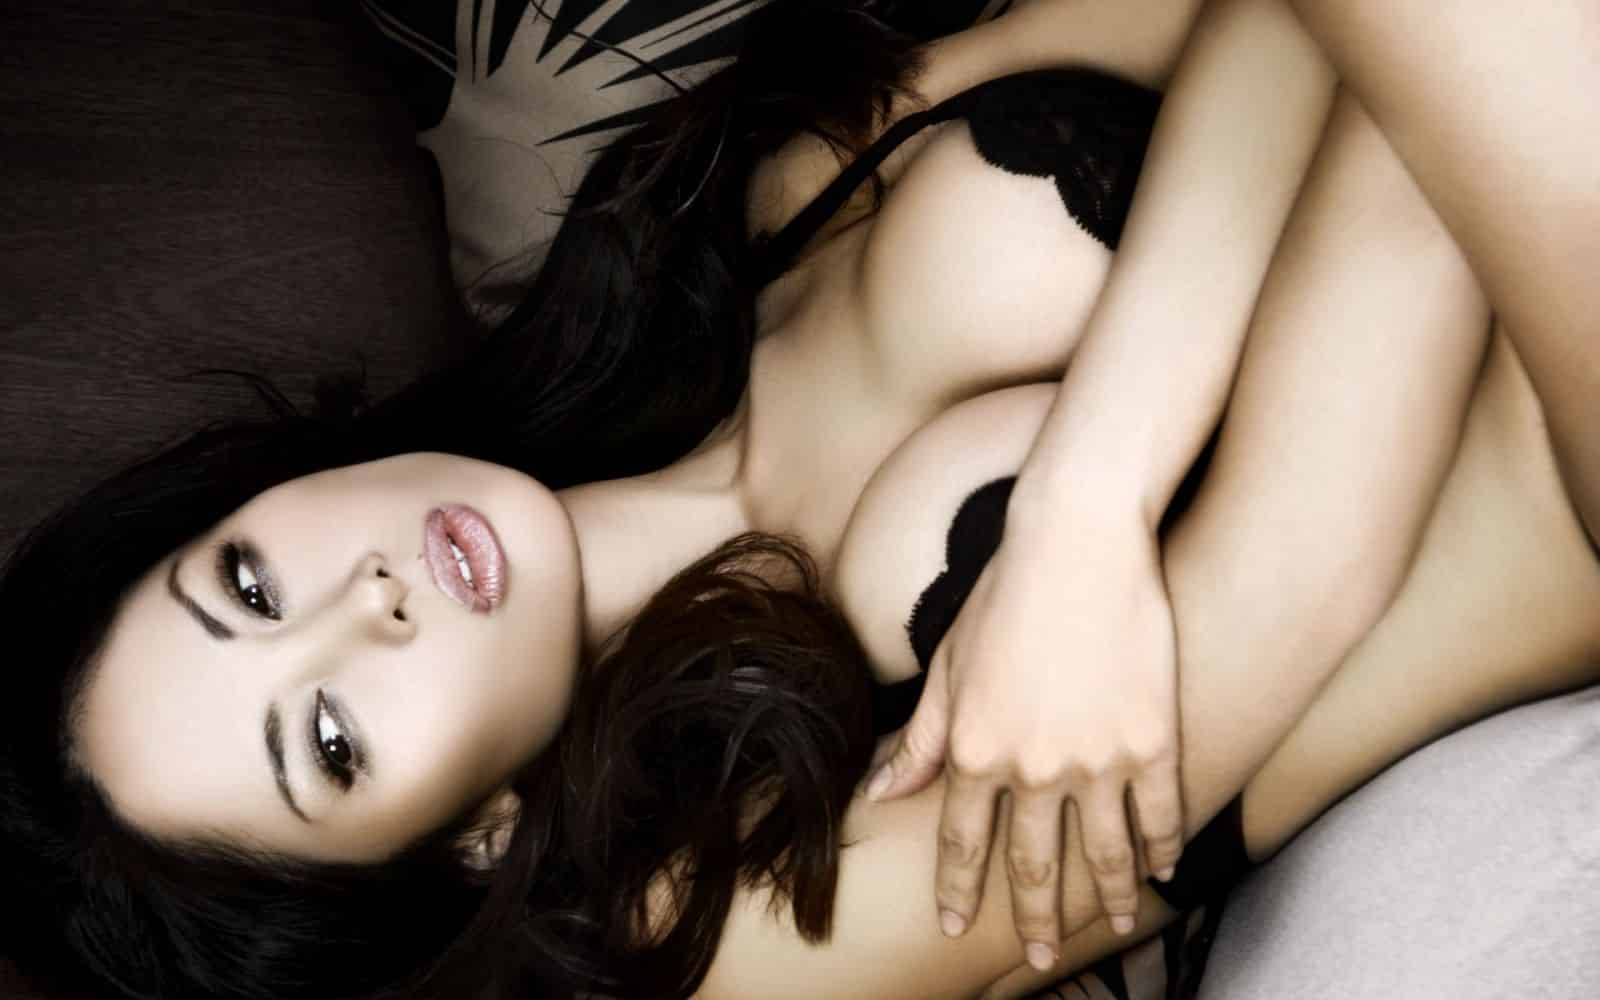 Tera Patrick – The Superstar of PlayBoy And Many More XXX Photo Shoot Vidoes by FreeHDVideos.xxx